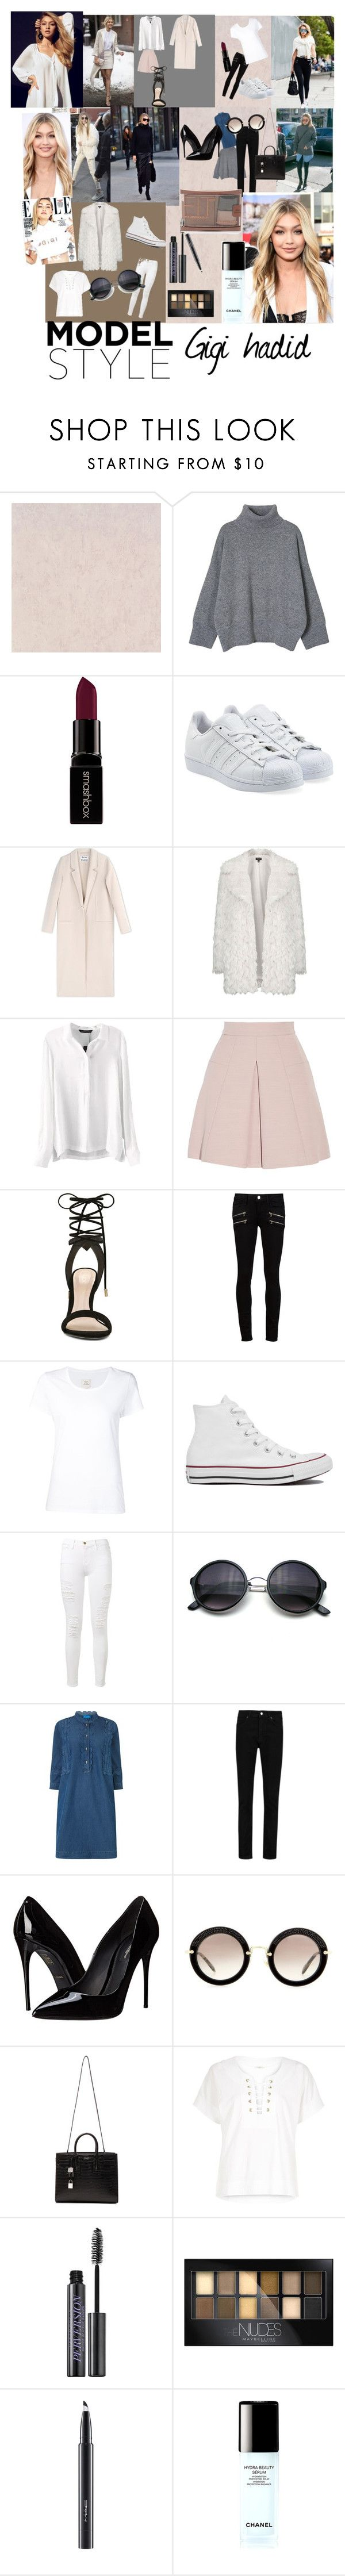 """#looklike #gigihadid #gigi #maybeline #modestyle #beauty #clothers #beauty #lips #mac #maybeline #chanel"" by alvvaa ❤ liked on Polyvore featuring Smashbox, adidas Originals, Acne Studios, Topshop, Alexander McQueen, ALDO, Paige Denim, Max 'n Chester, Converse and Frame Denim"